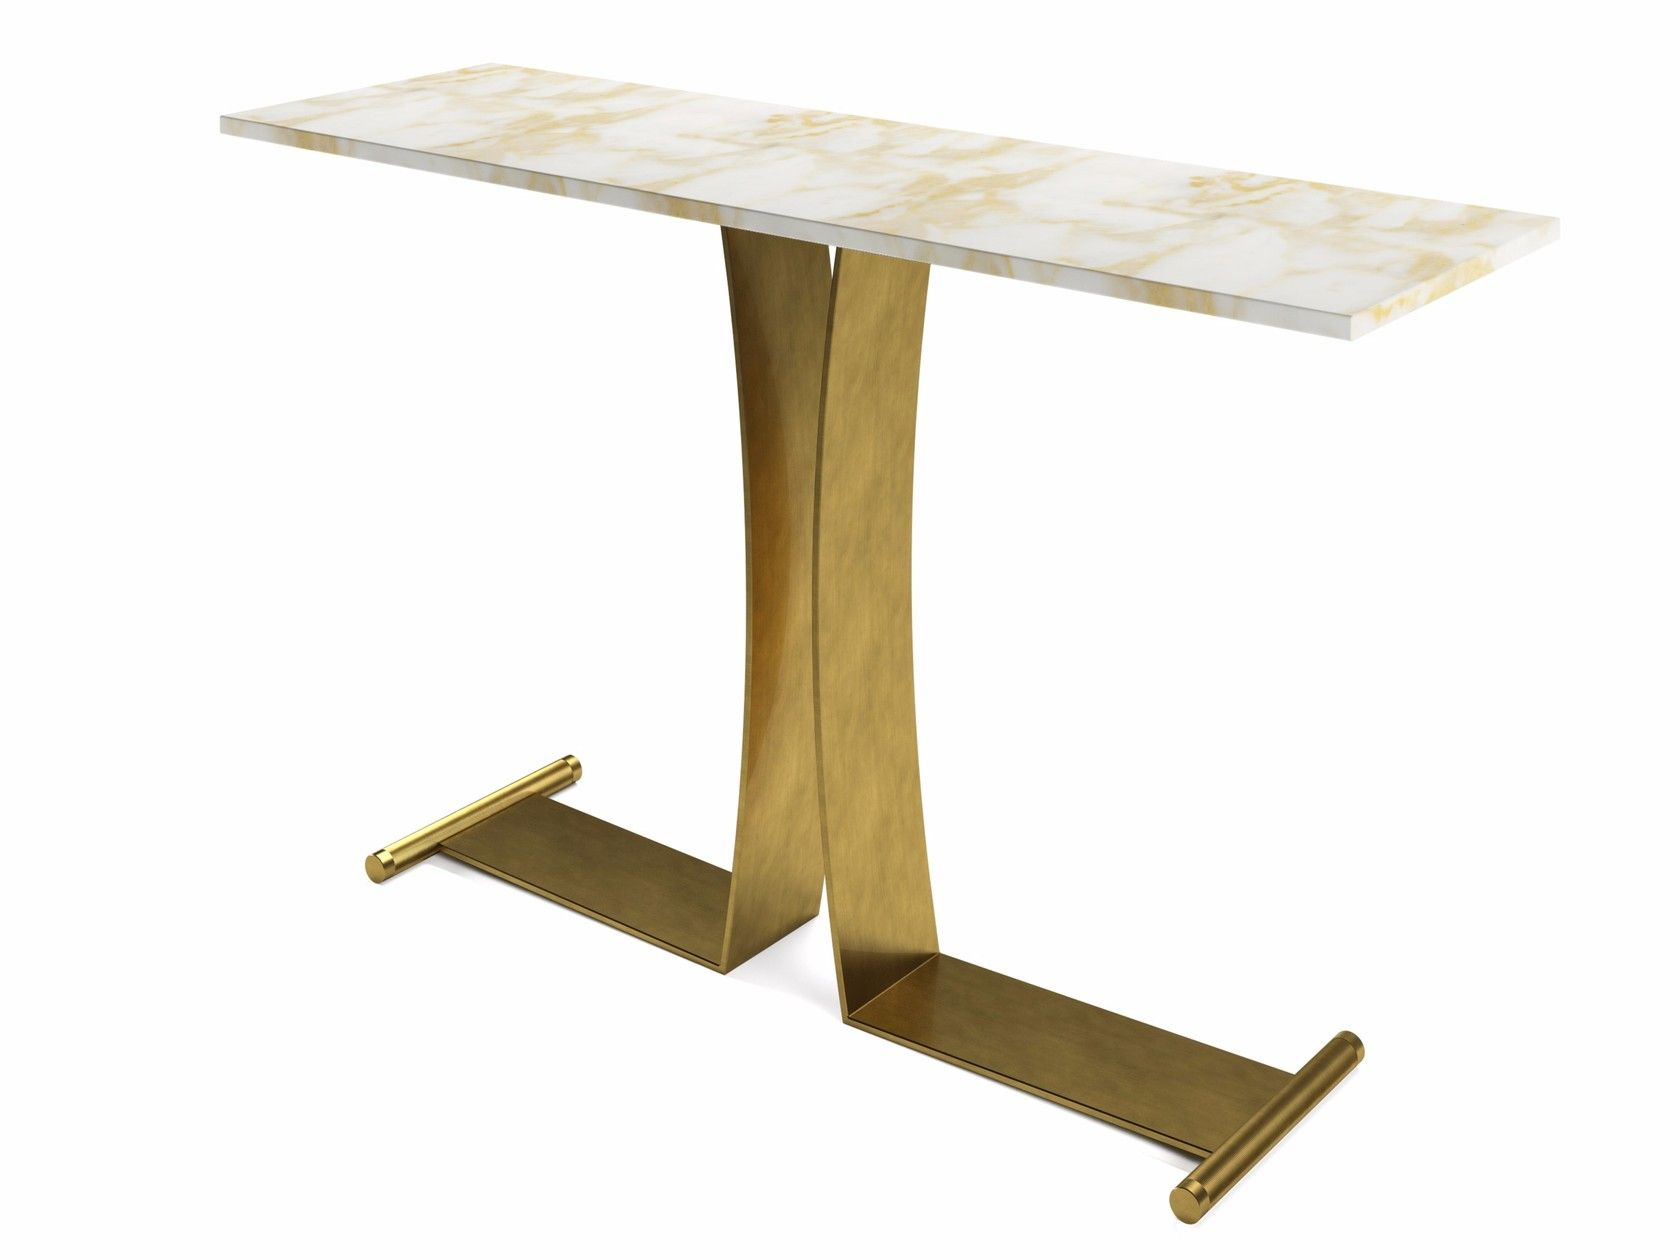 Guy | Console Table In 2018 | 1Gja Console Tables | Pinterest intended for Parsons Grey Marble Top & Brass Base 48X16 Console Tables (Image 9 of 30)